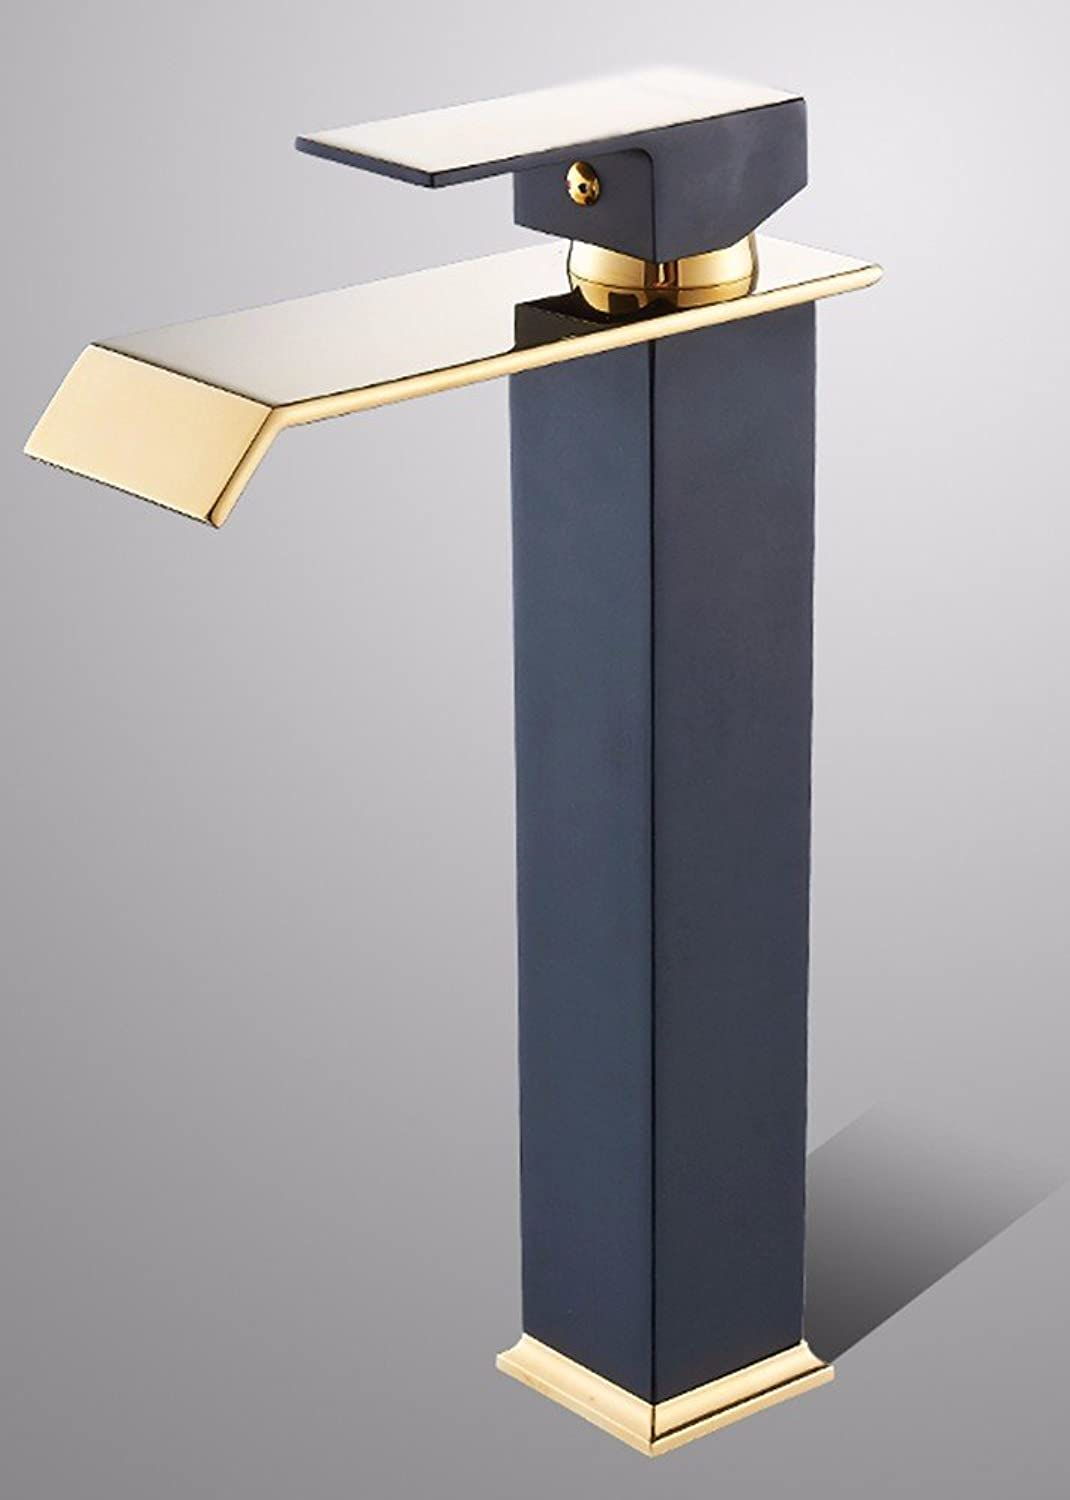 Hlluya Professional Sink Mixer Tap Kitchen Faucet The copper, hot and cold, a vanity area, bathroom sink Faucet 18